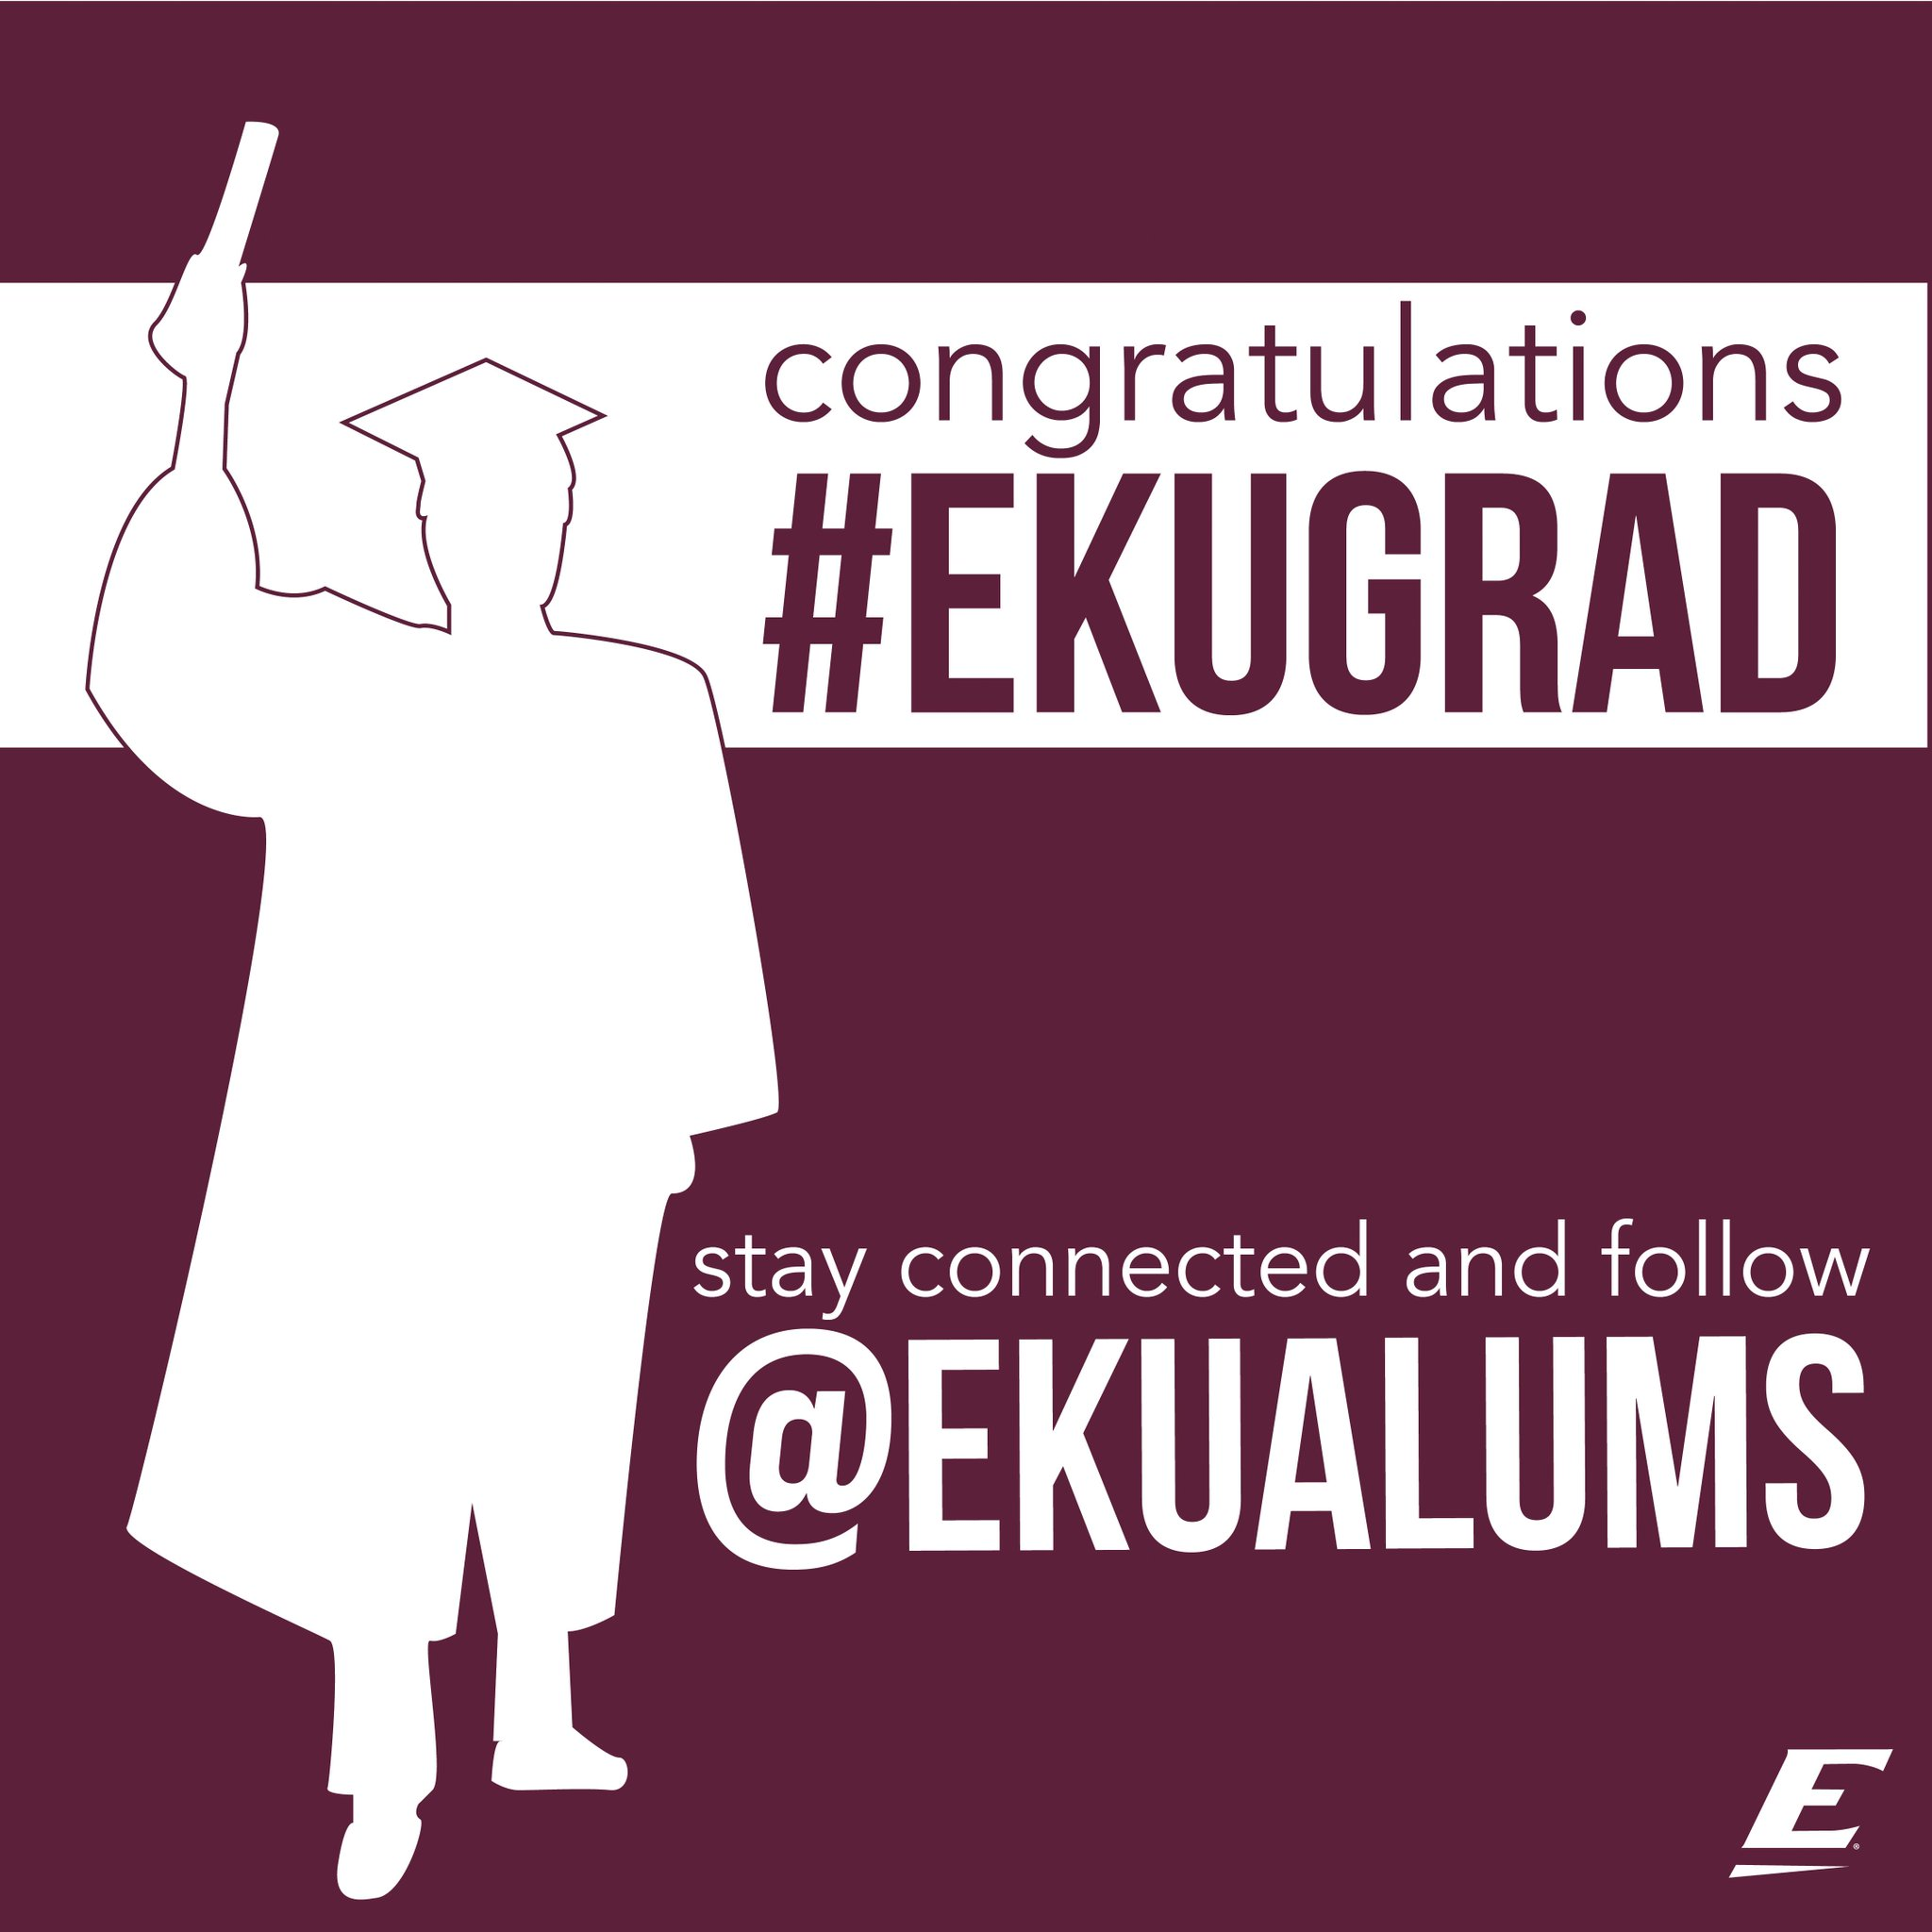 Congratulations #EKUGrad! Stay connected and follow @ekualums! https://t.co/9lF7UCHbT8